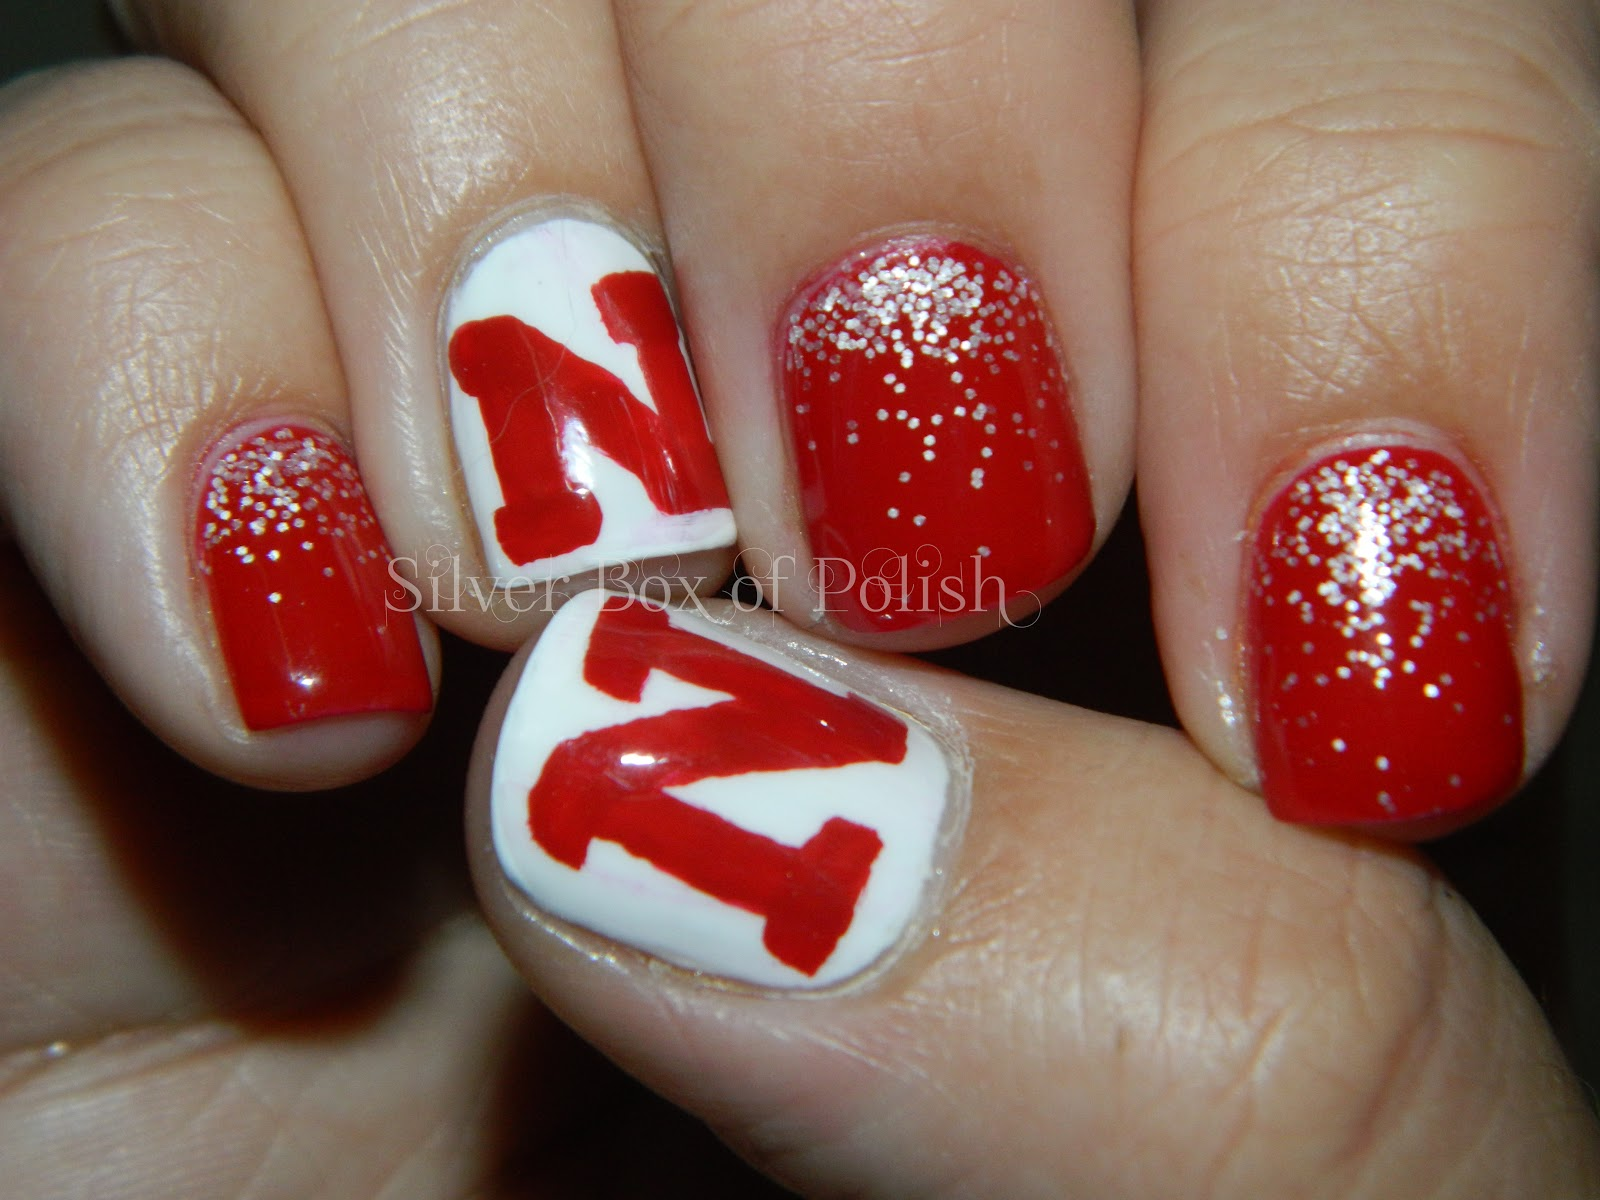 I Used Wet N Wild Red A Good Book And Nyc French White Tip For My Base Colors The Glitter Grant Is Done With Loose Nail Art